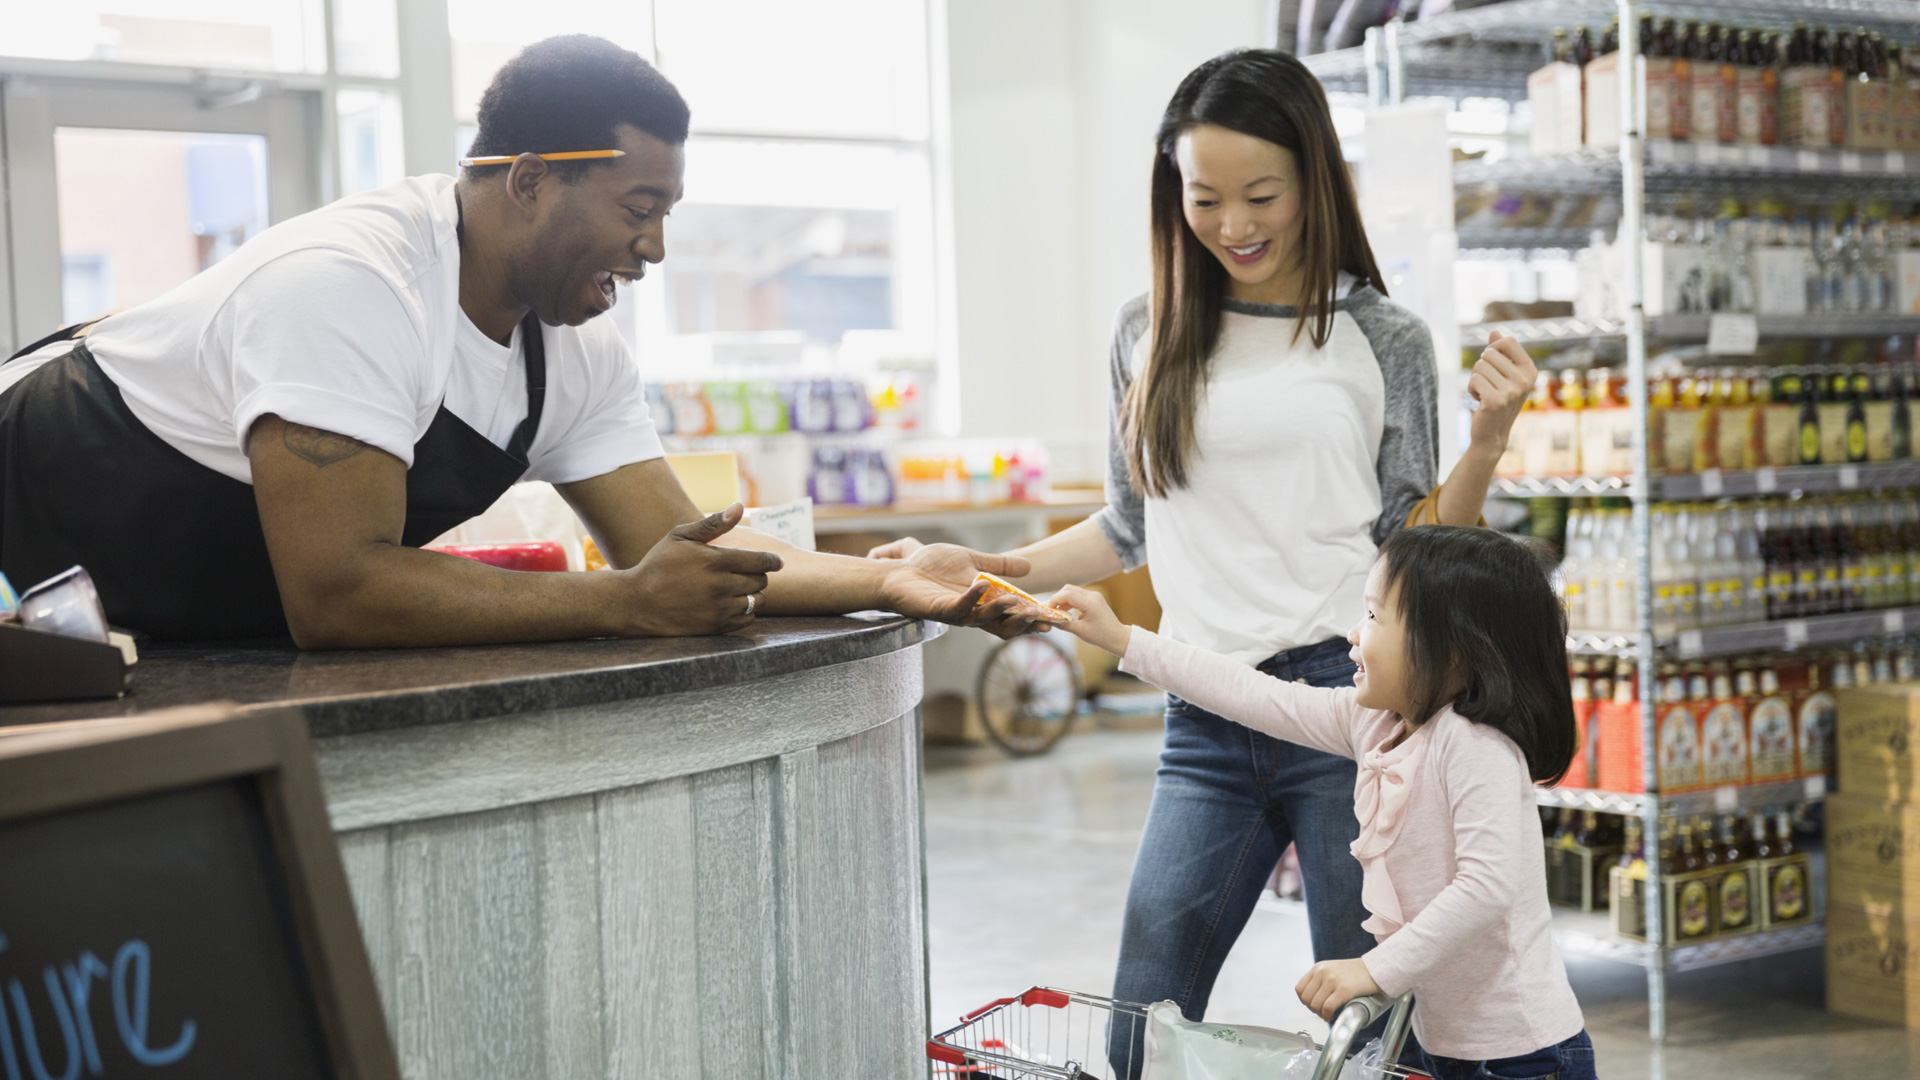 5-unique-ways-to-support-small-business-saturday.jpg